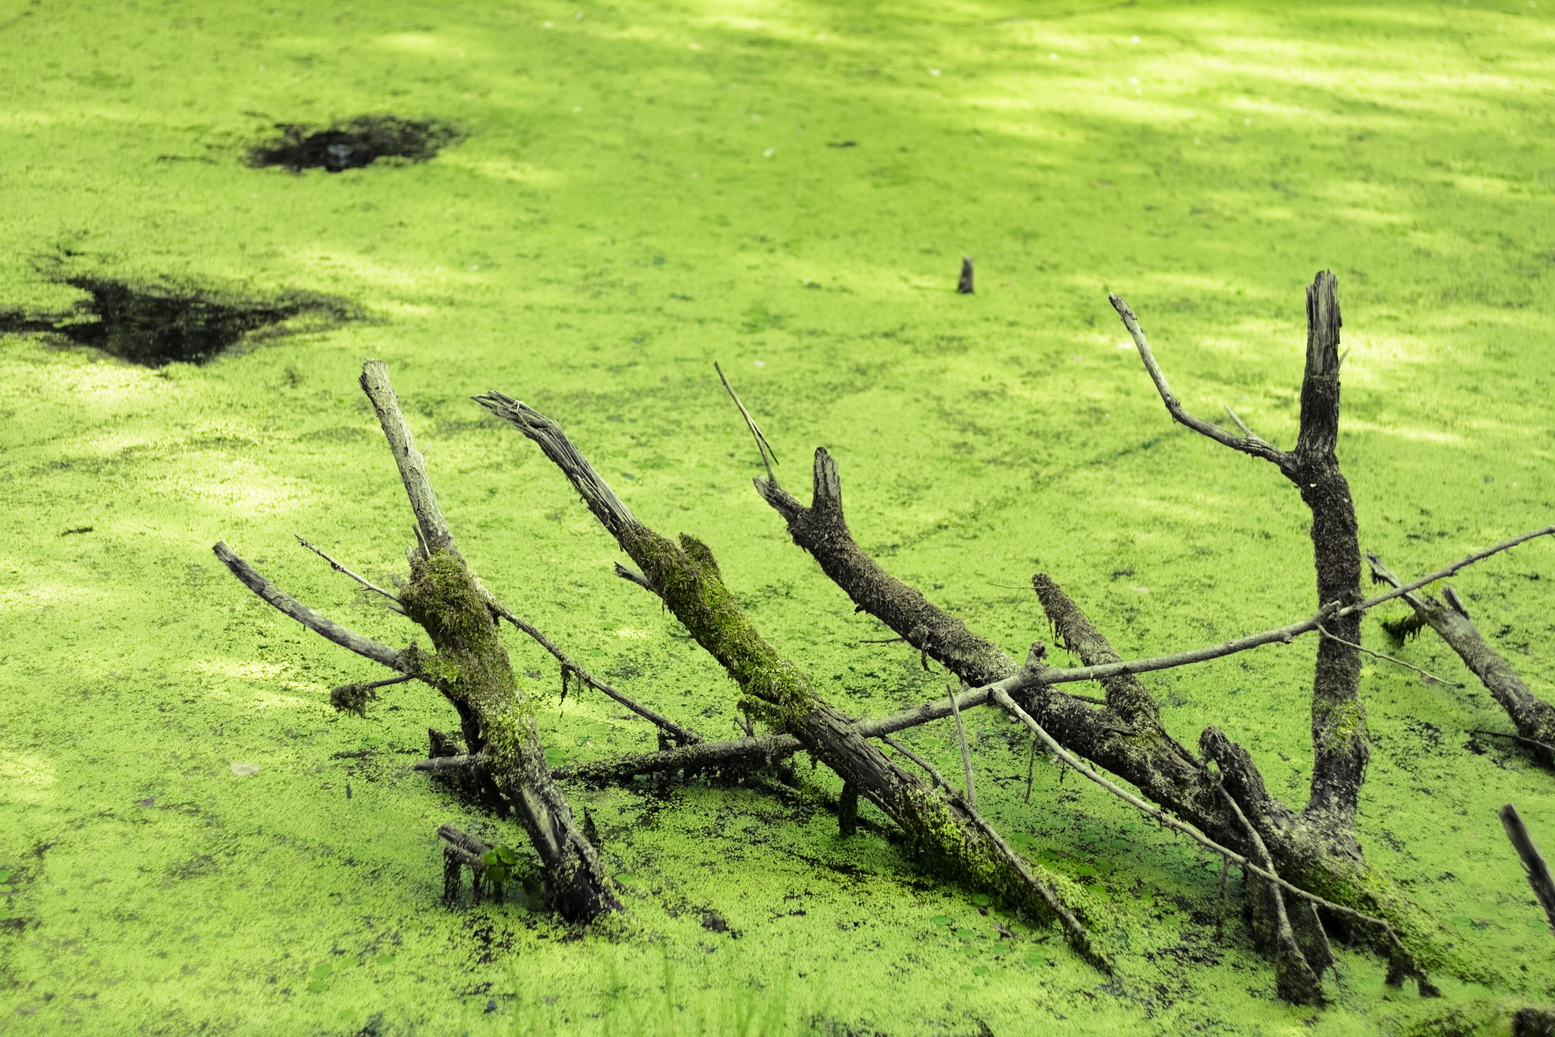 swamp, Beauty, Smooth, Spring, Stick, HQ Photo